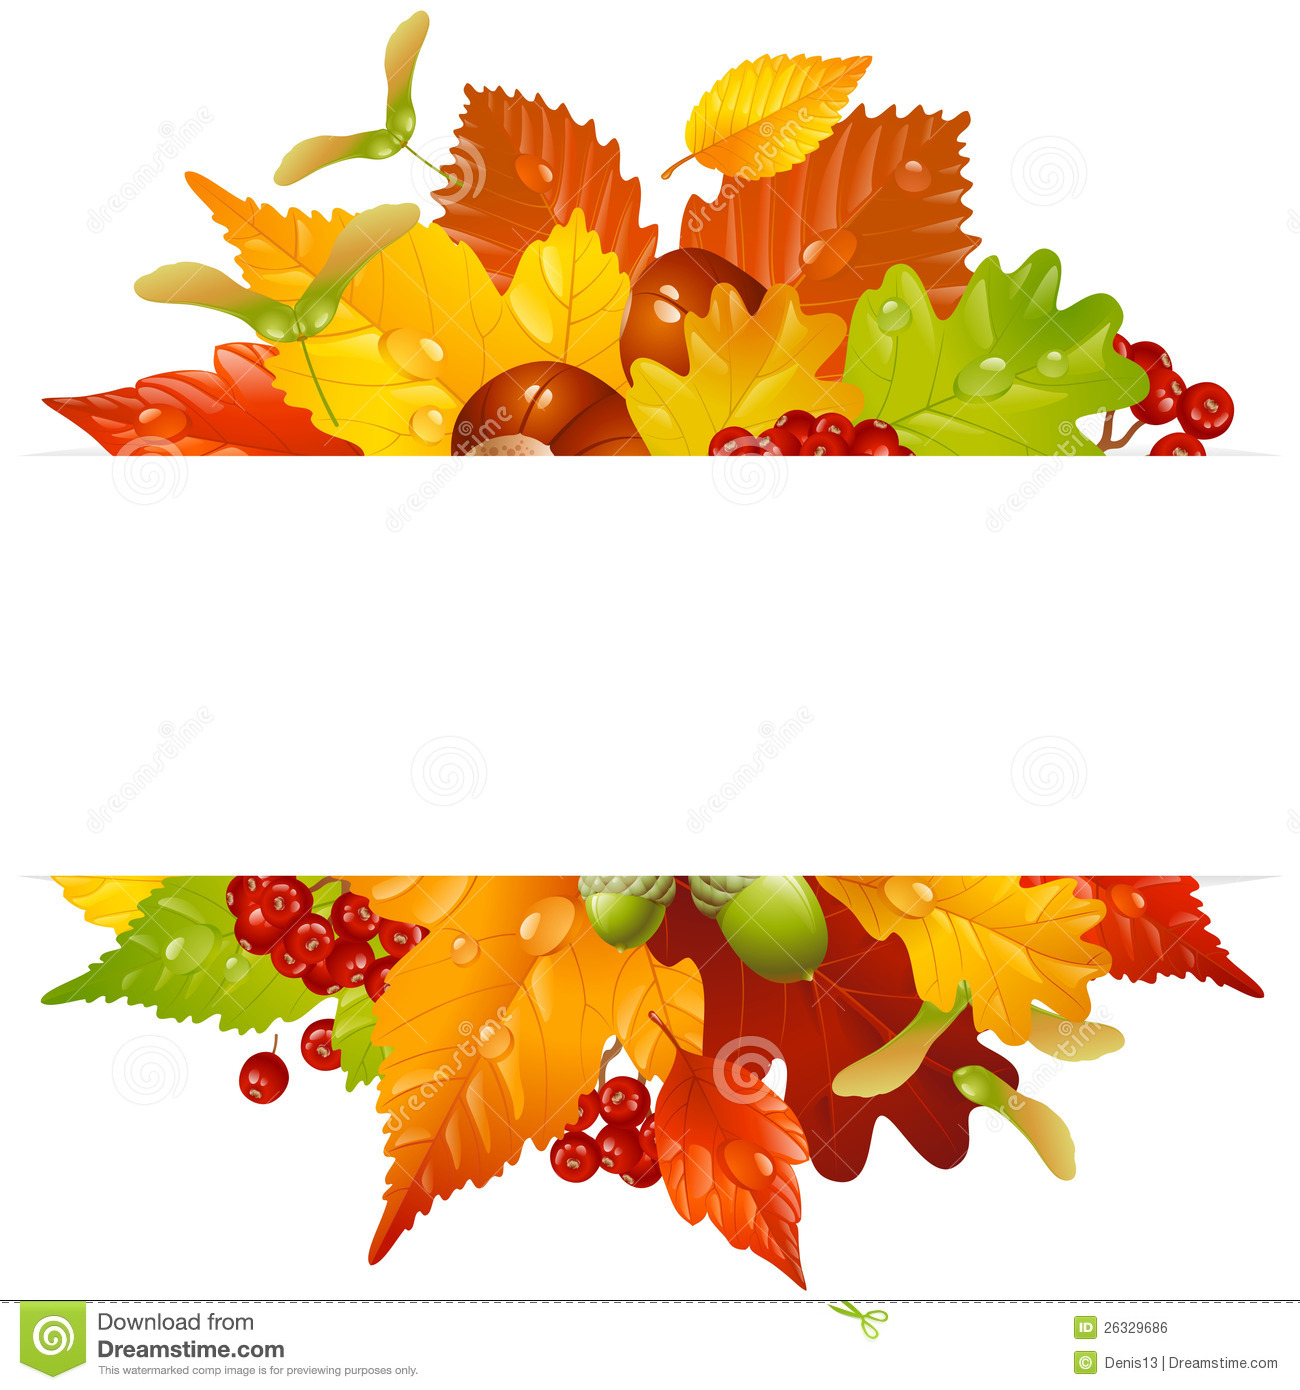 Birch Tree Fall Wallpaper Close Up Vector Autumn Frame With Fall Leaf 2 Royalty Free Stock